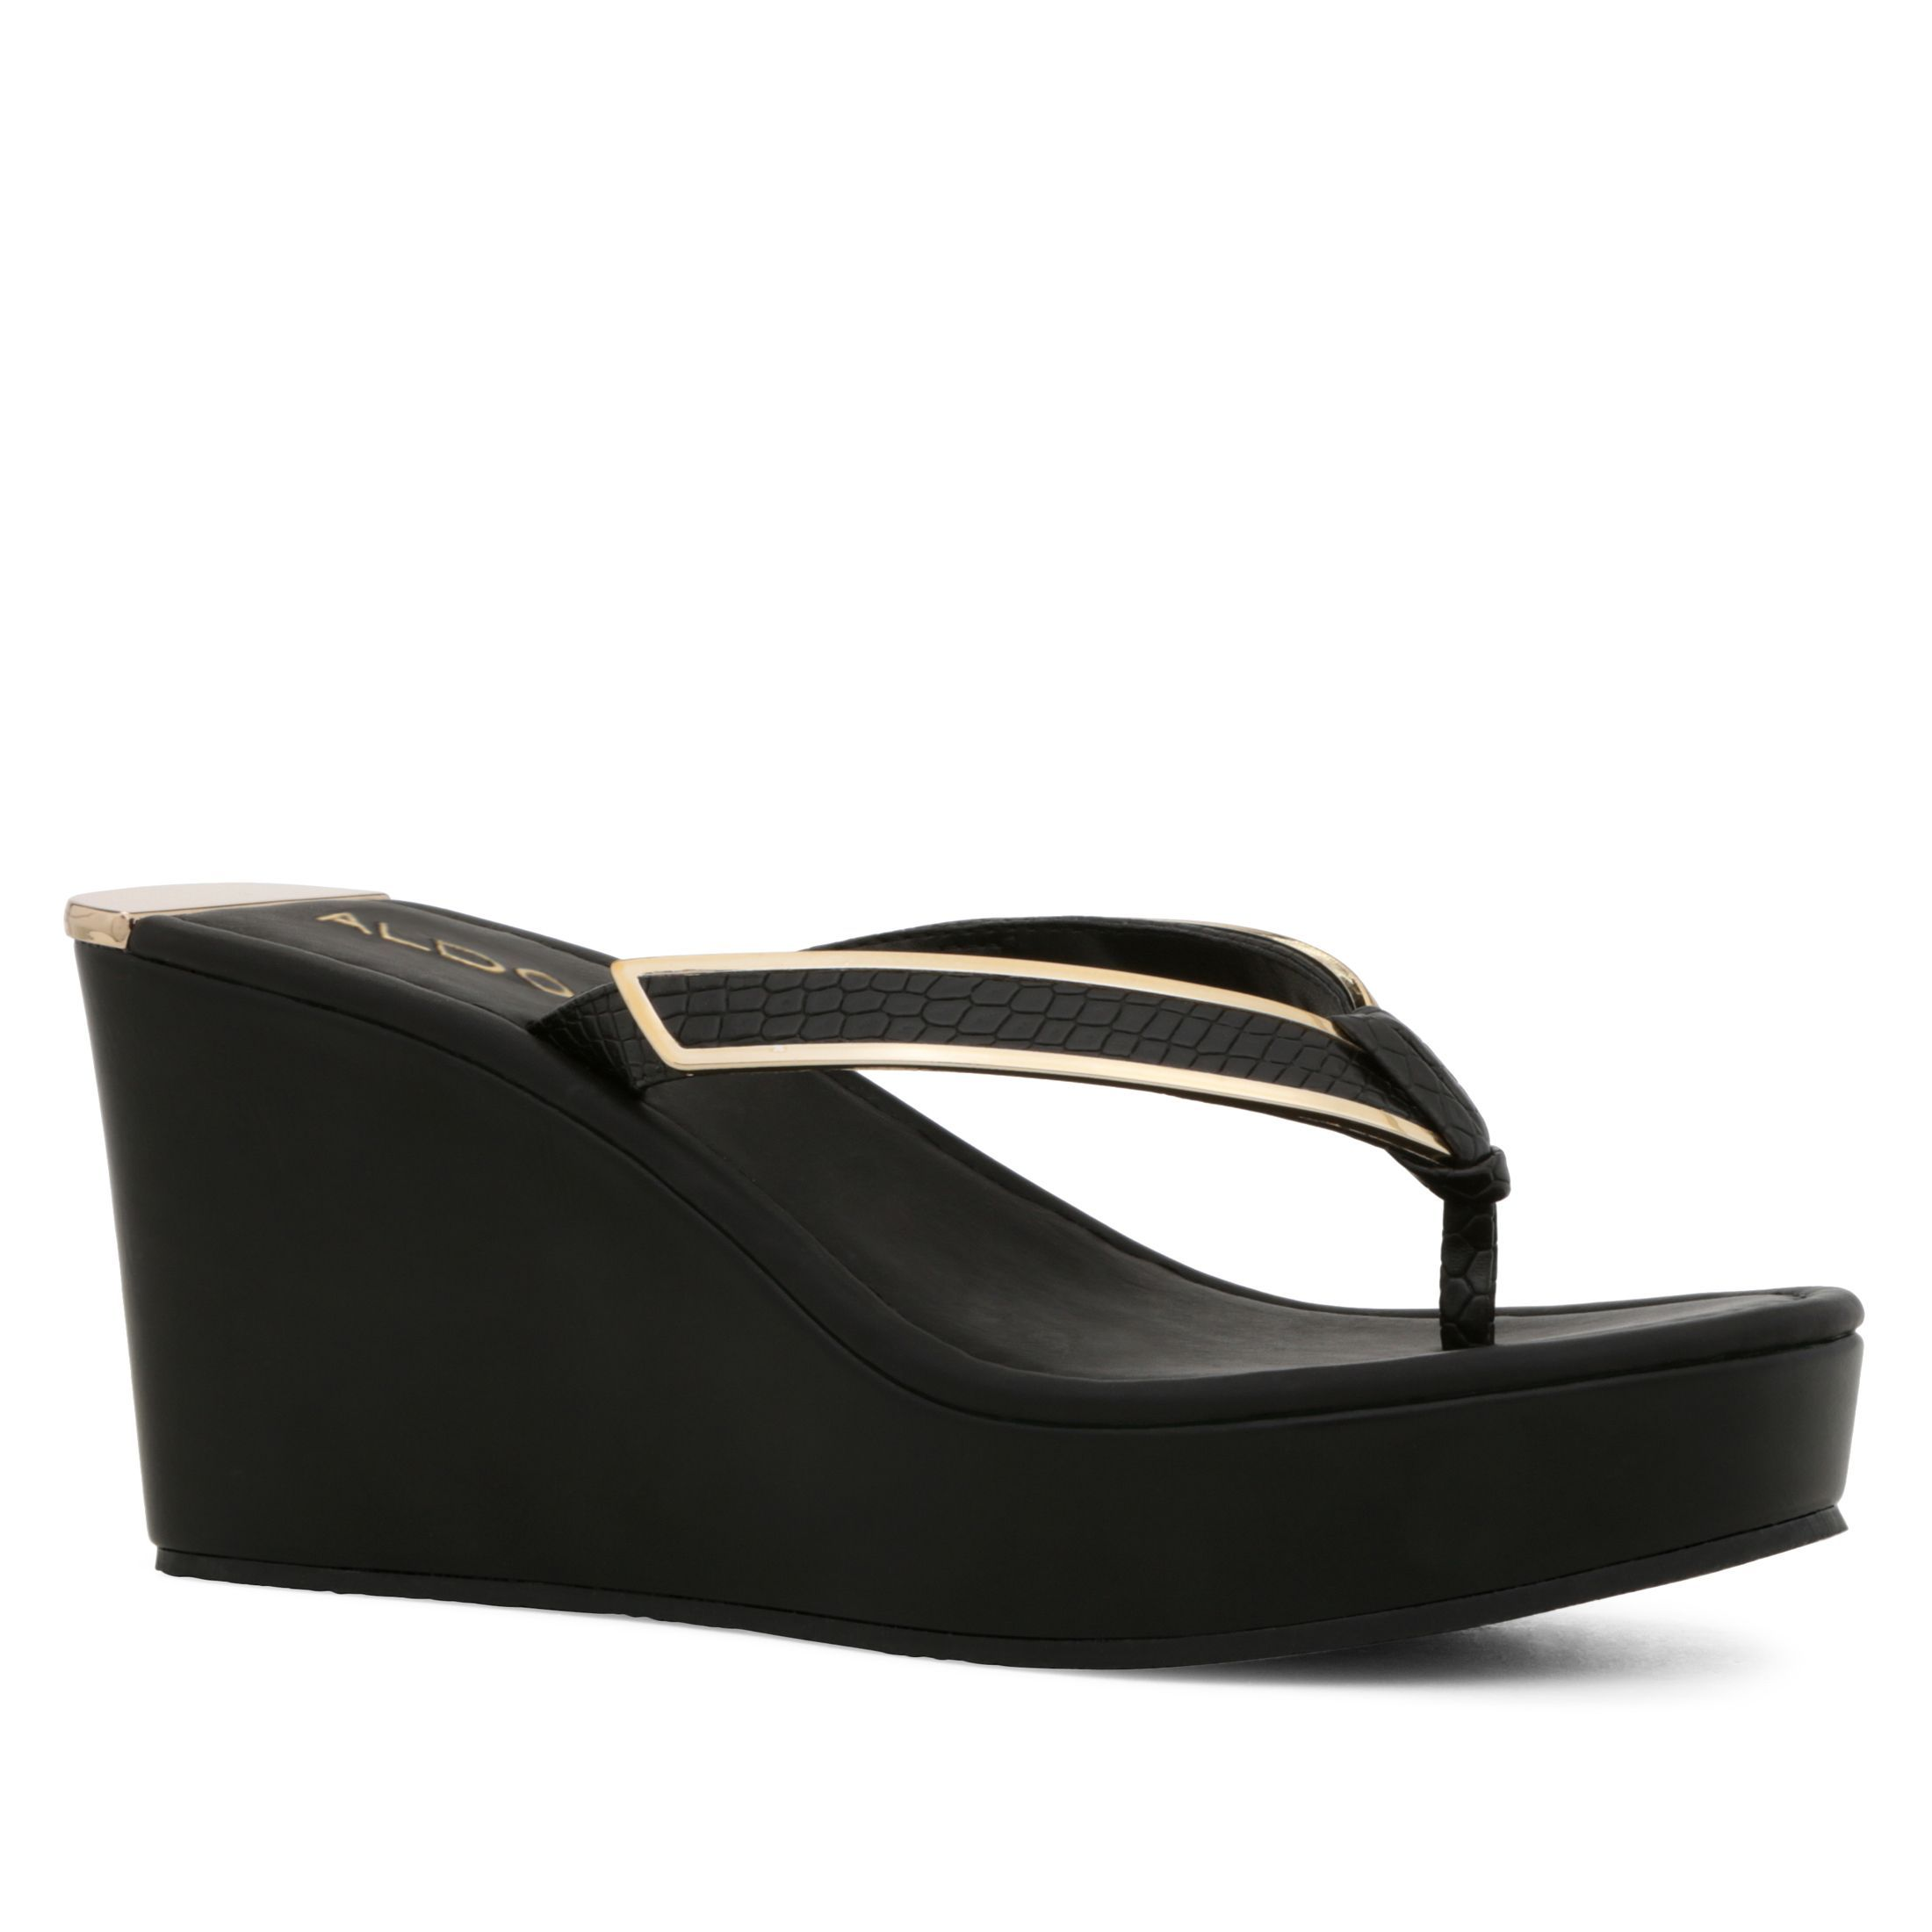 3f62be12c8 Aldo Jeroasien wedge sandal, Black | Ladies Shoes | Wedge sandals ...